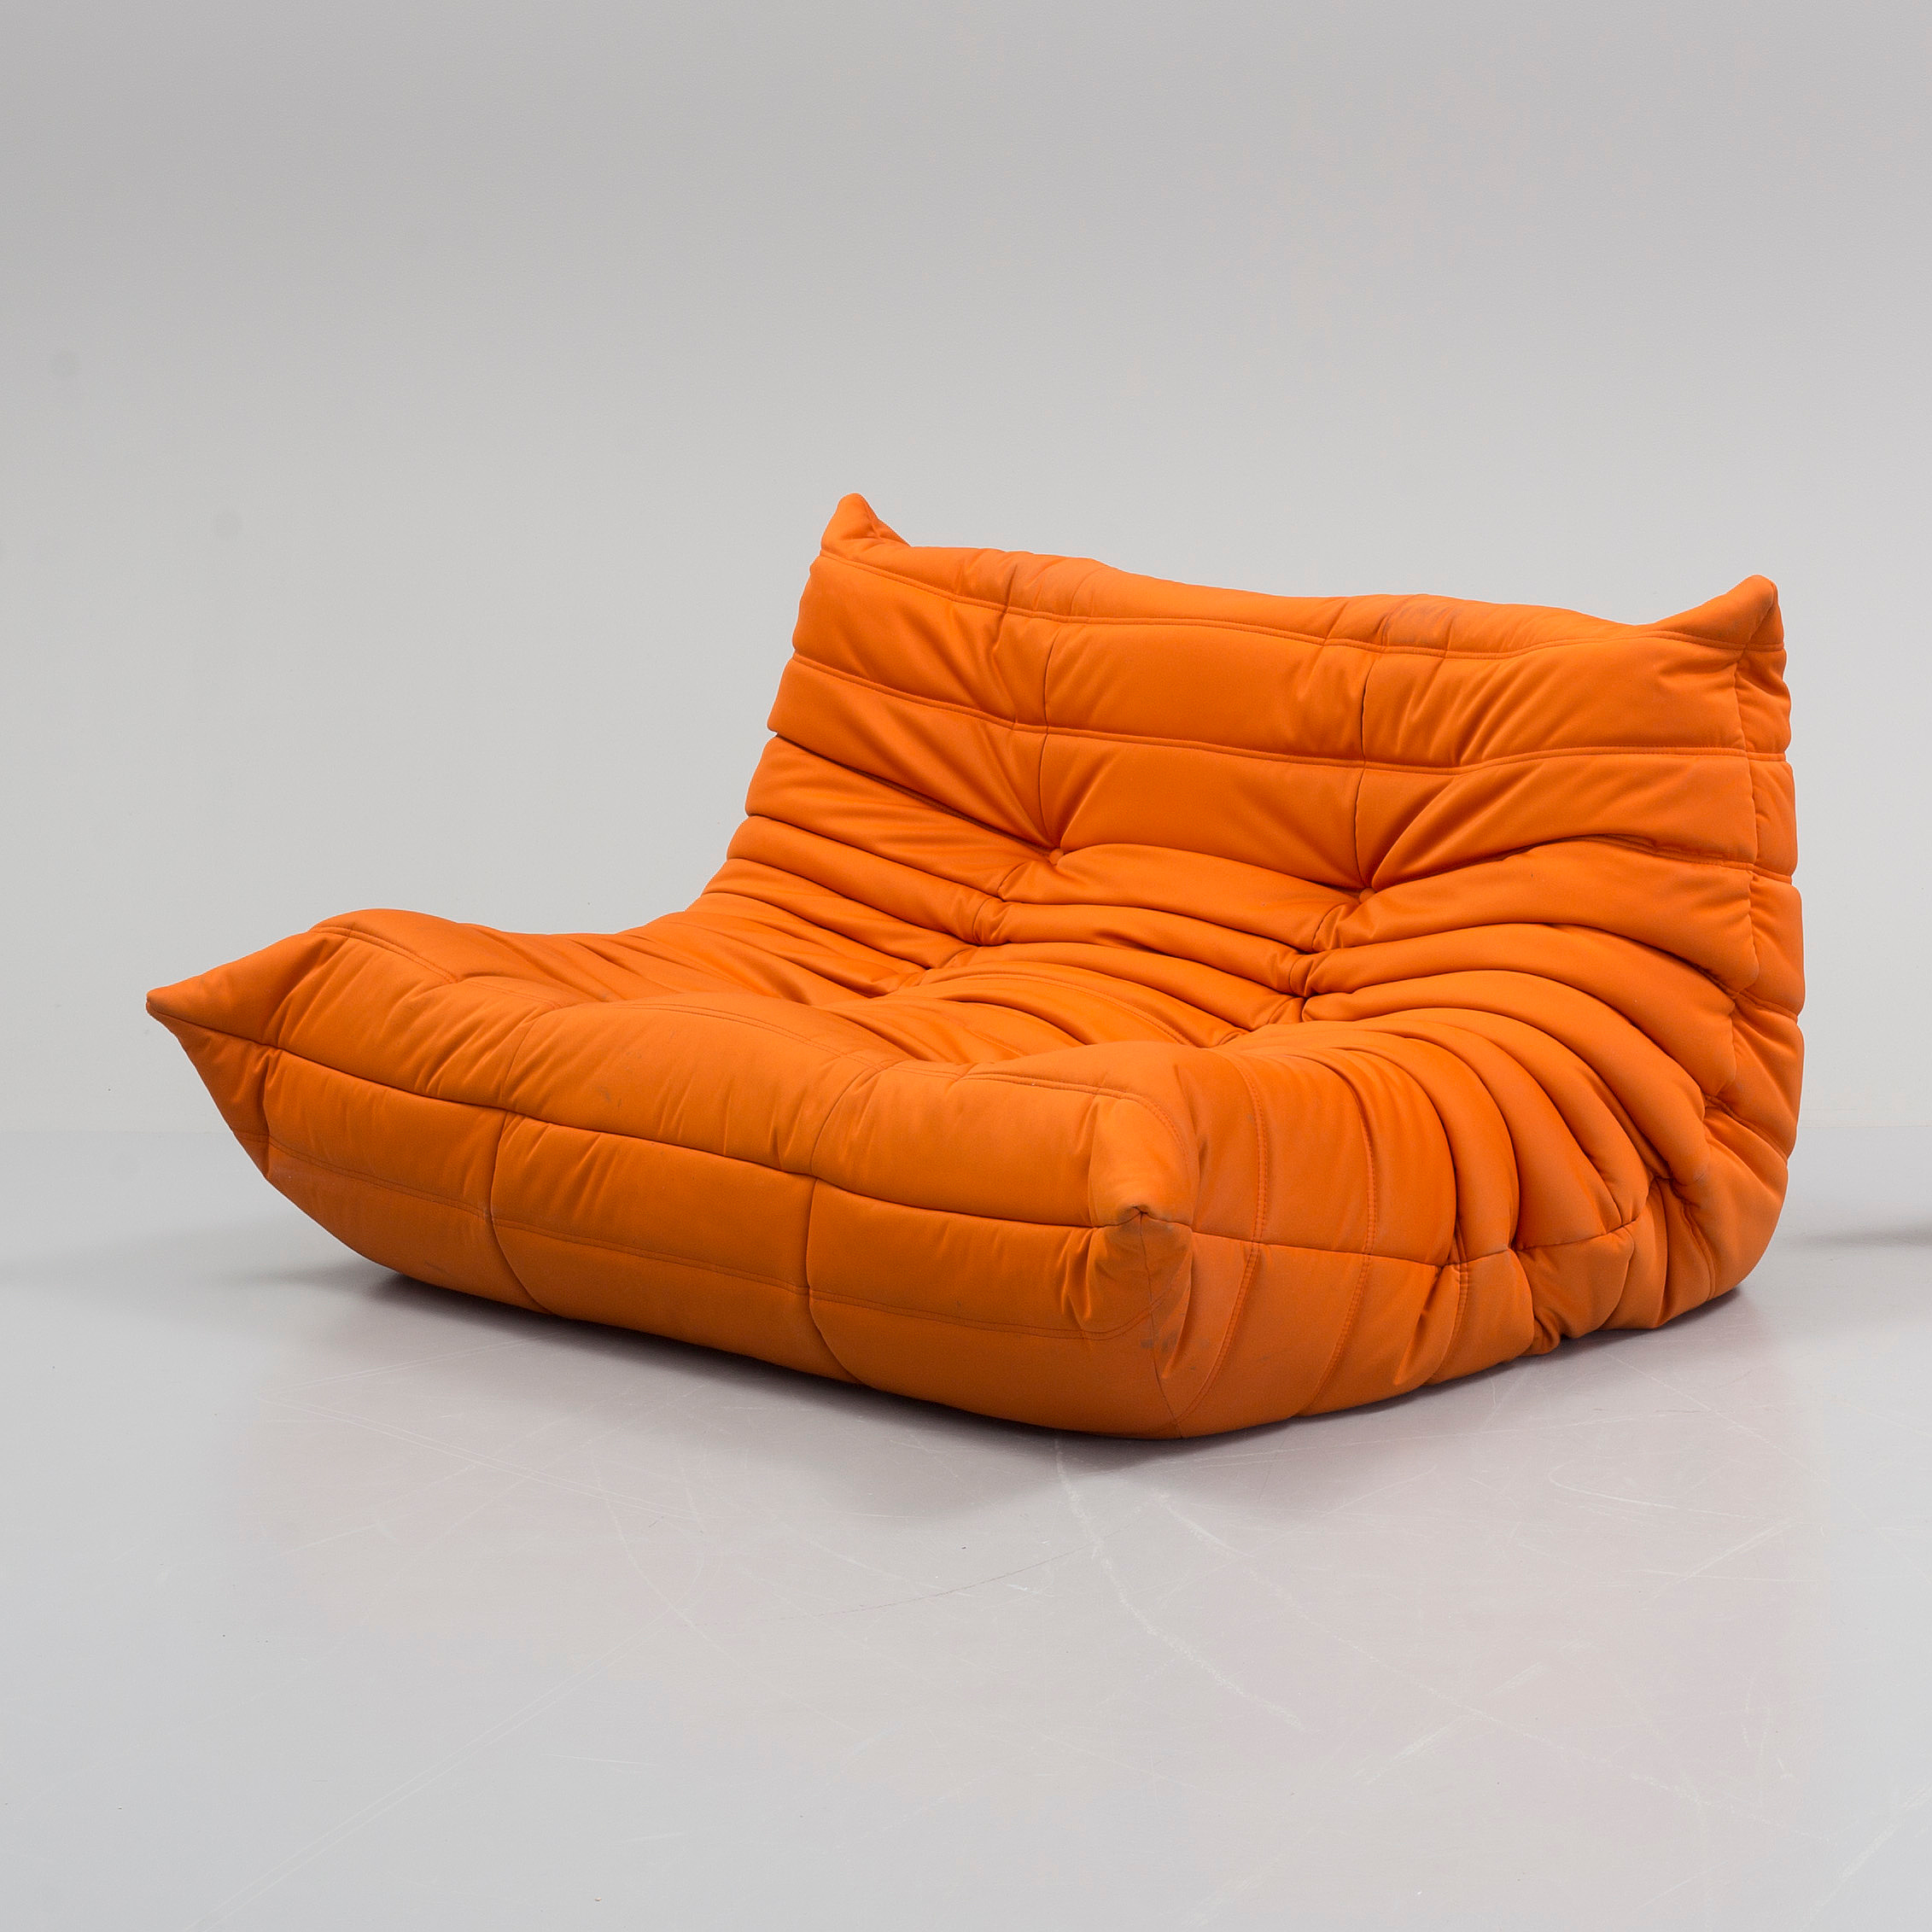 A Togo Sofa By Michel Ducaroy For Ligne Roset Bukowskis